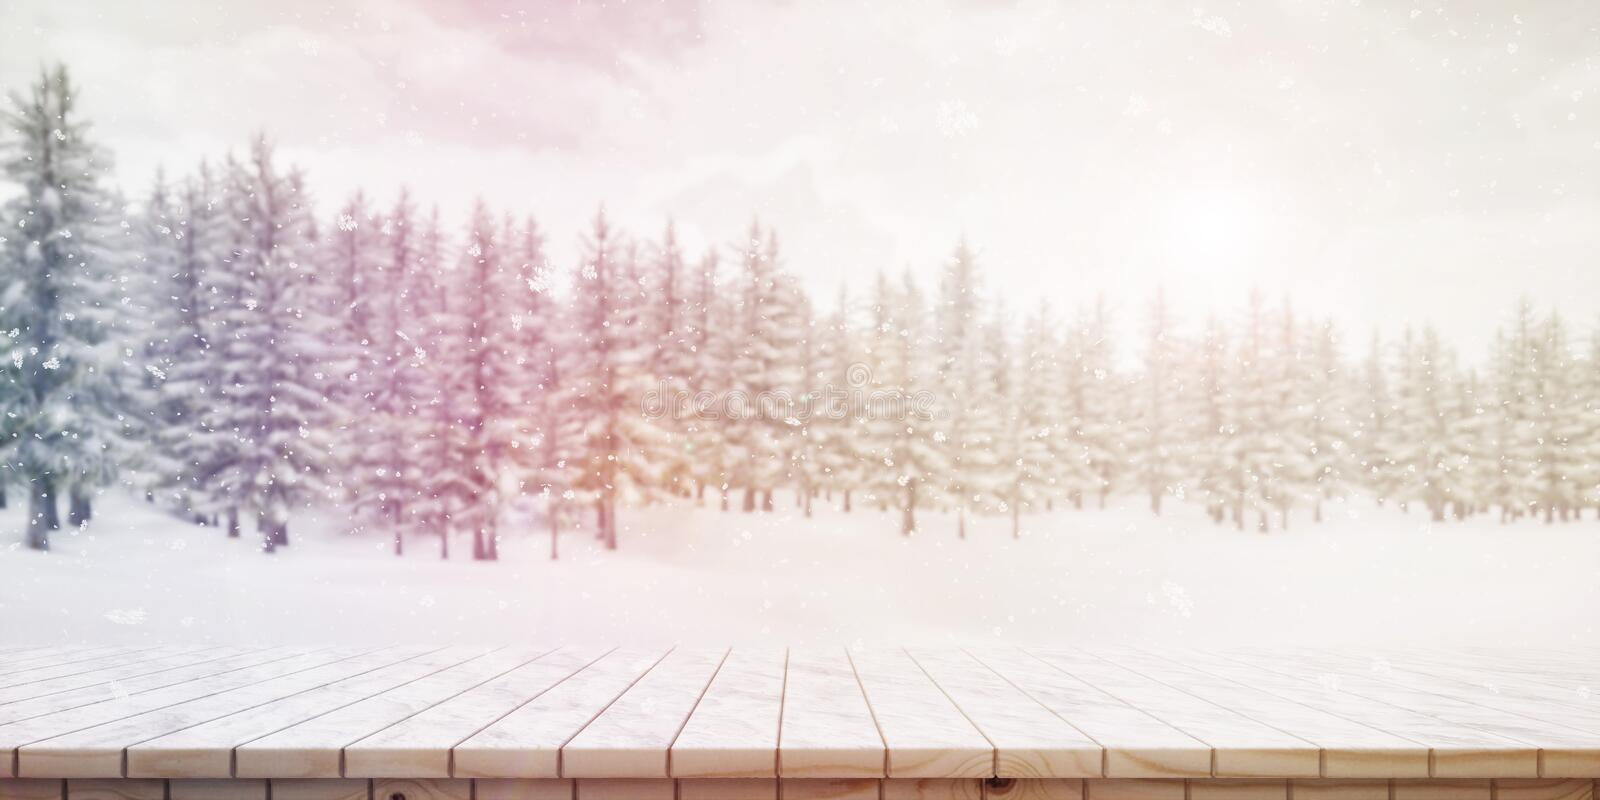 Closeup of colorful snowy wooden platform background, front view High-resolution 3D CG rendering illustration vector illustration